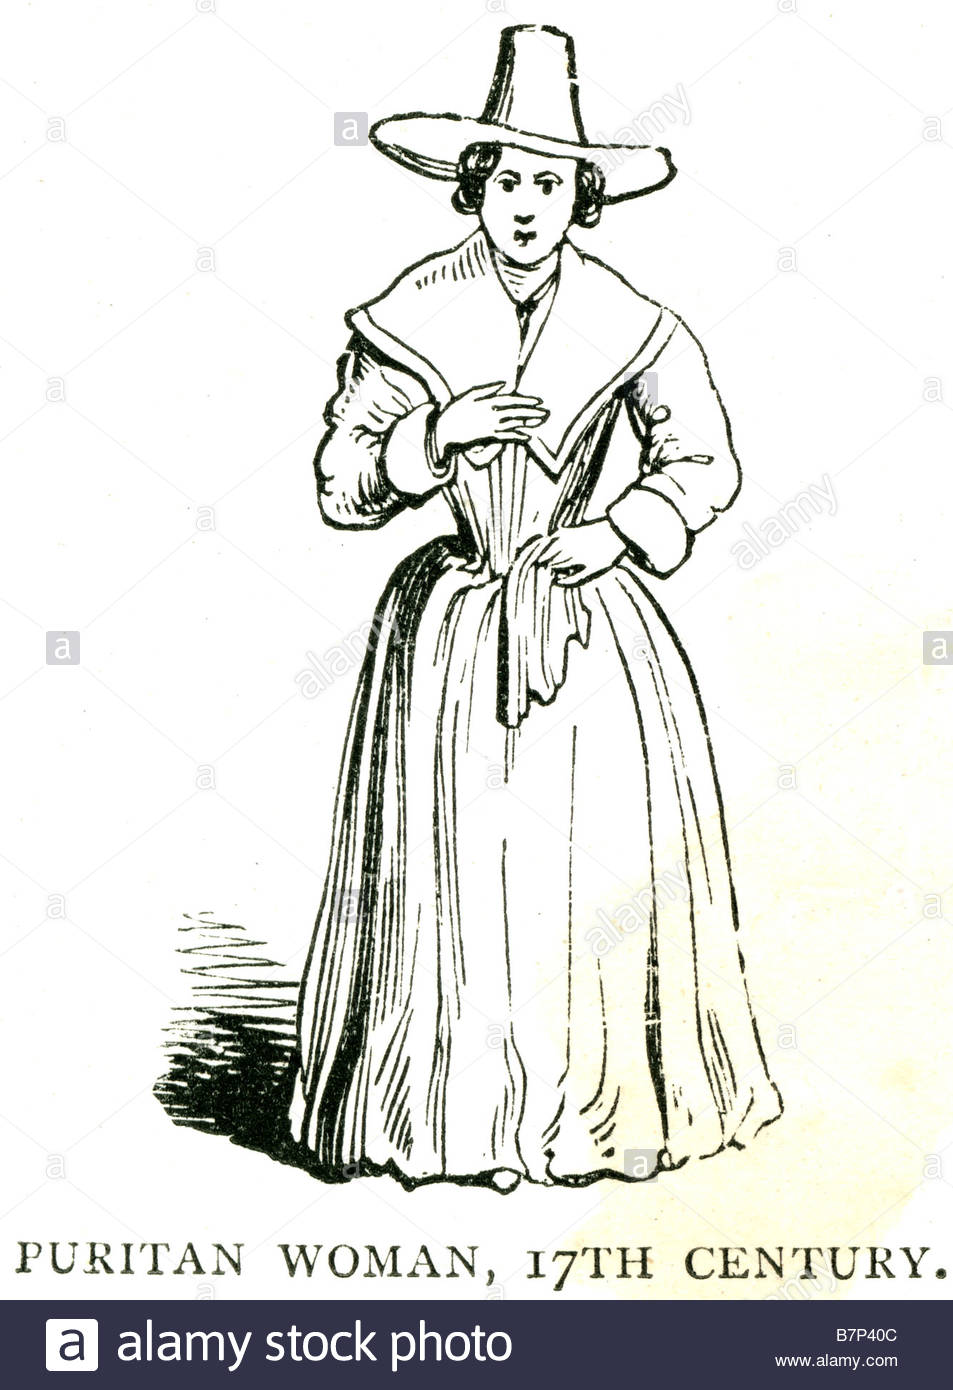 953x1390 Collection Of Puritan Woman Drawing High Quality, Free